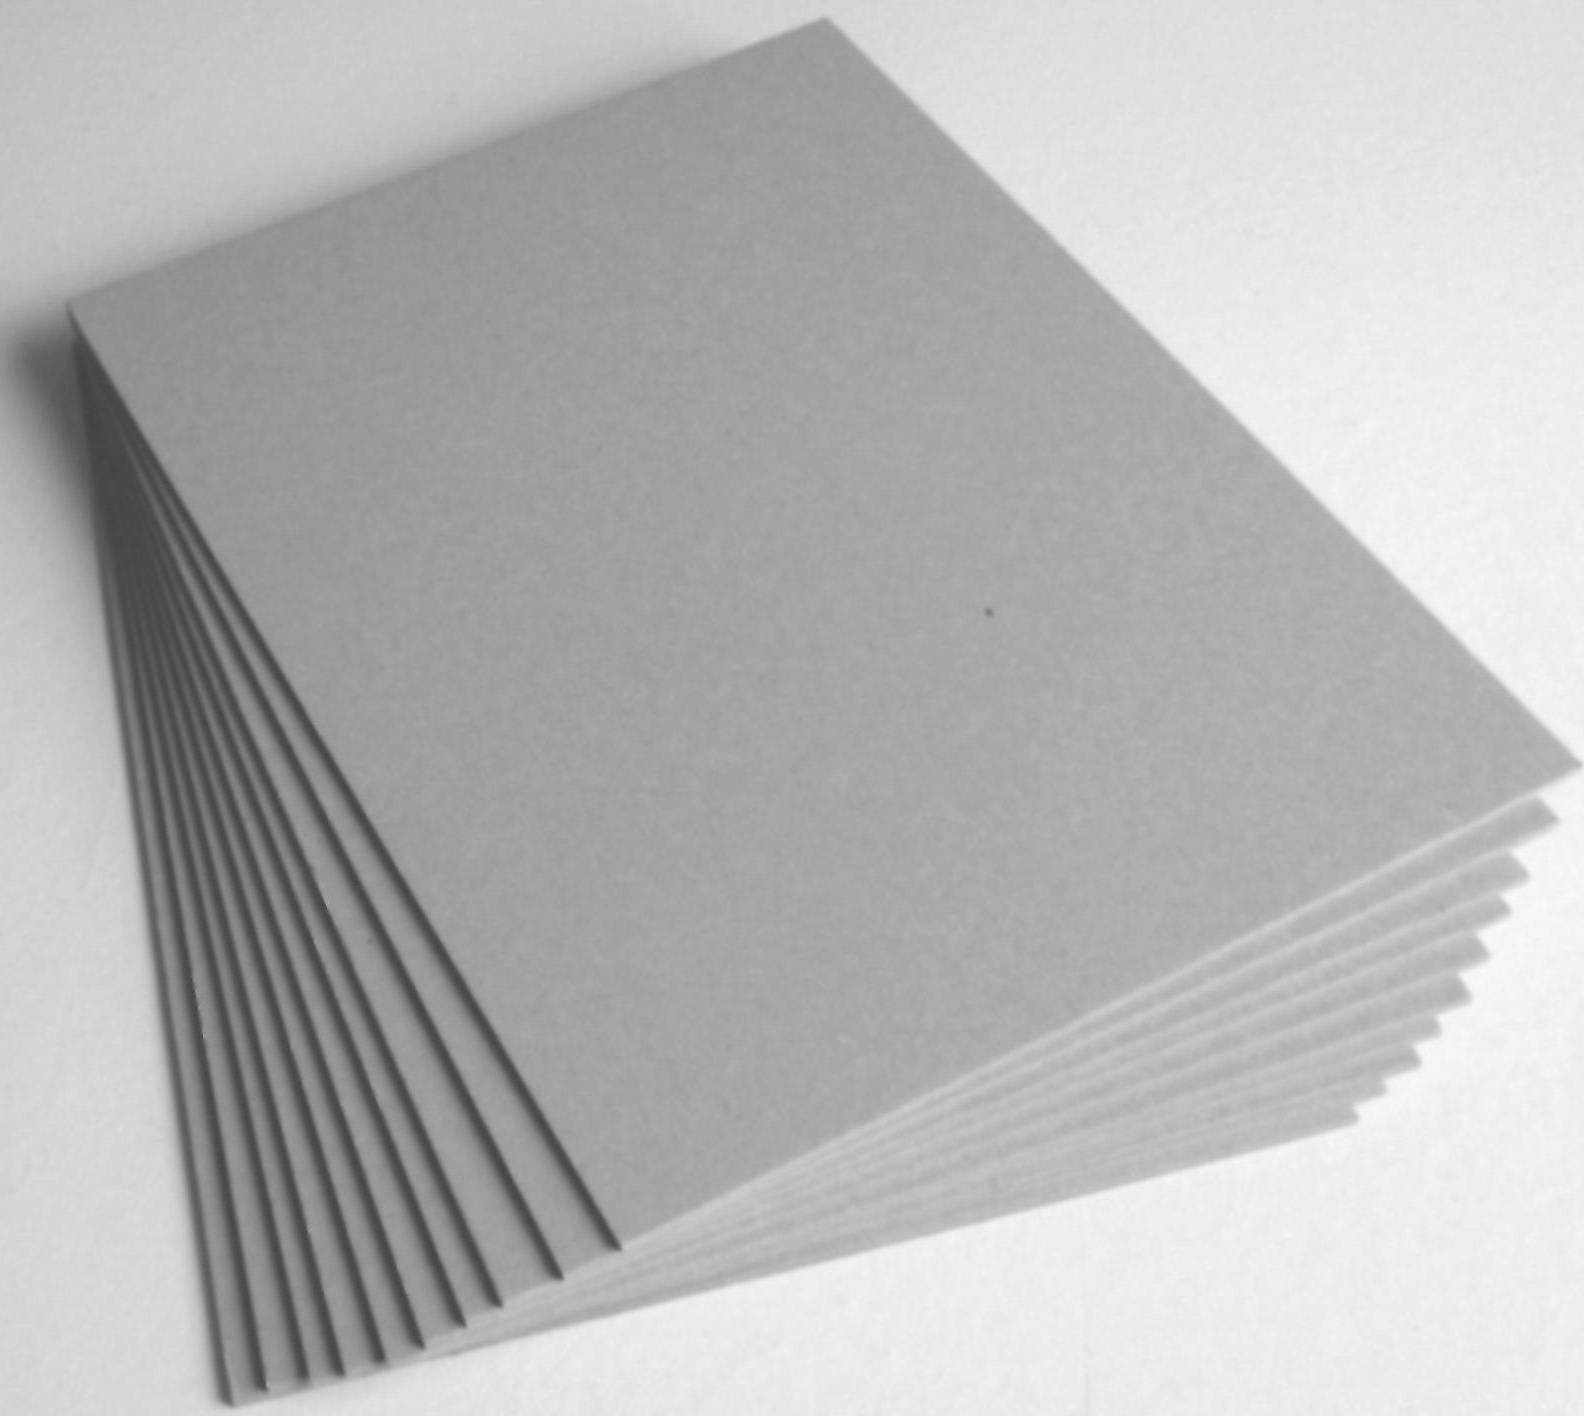 High quality grey board for box making